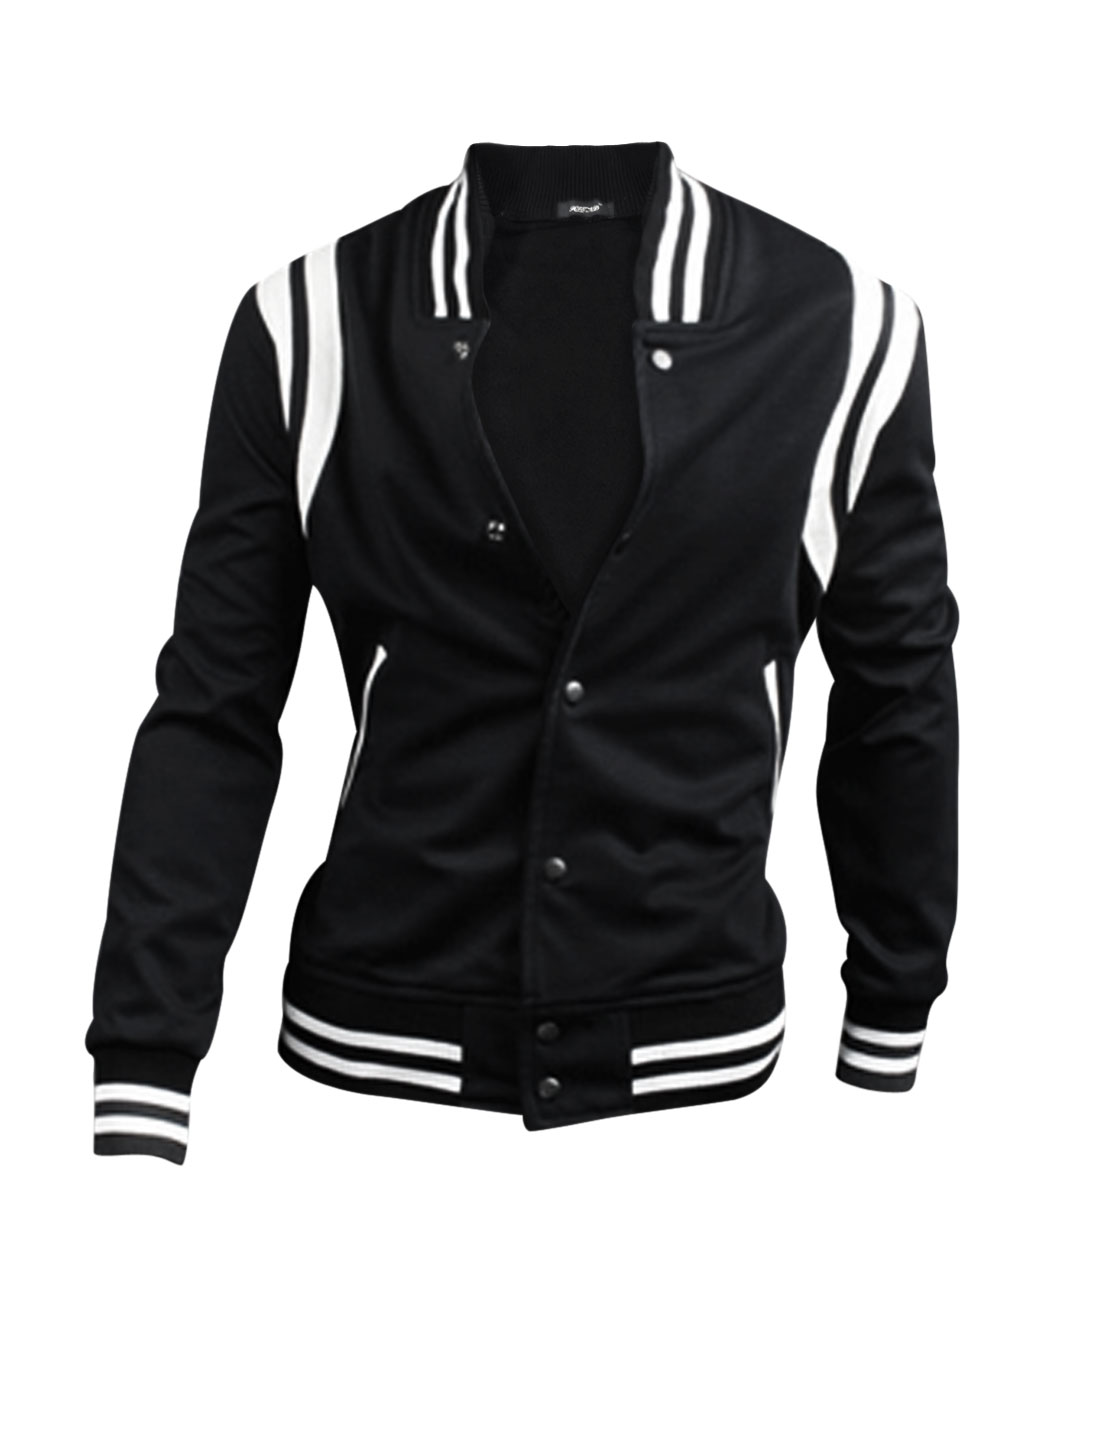 Men Ribbed Collar Single Breasted Contrast Color Elastic Waist Ball Jacket Black M